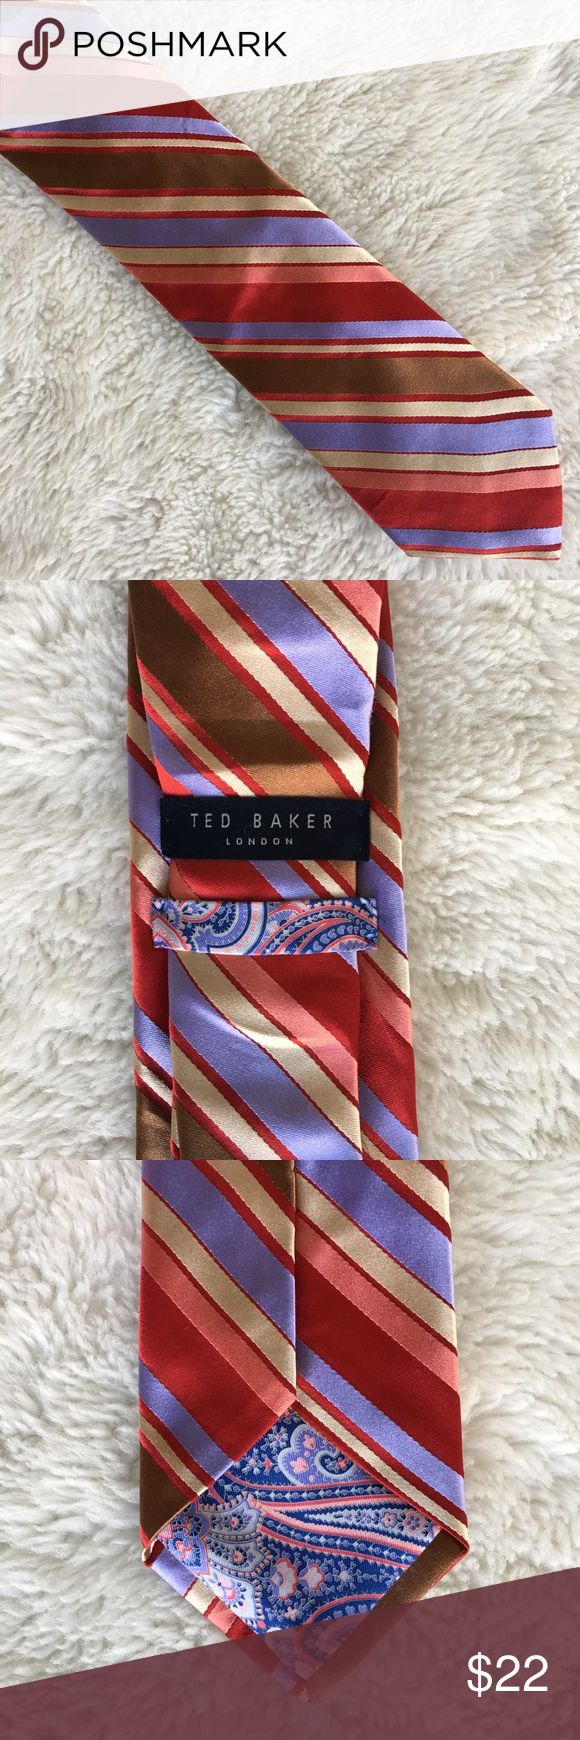 Ted Baker Men's Striped Multicolor Silk Tie Pre-owned authentic Ted Baker Men's Striped Multicolor Silk Tie. Please look at pictures for better reference. Happy Shopping! Ted Baker Accessories Ties